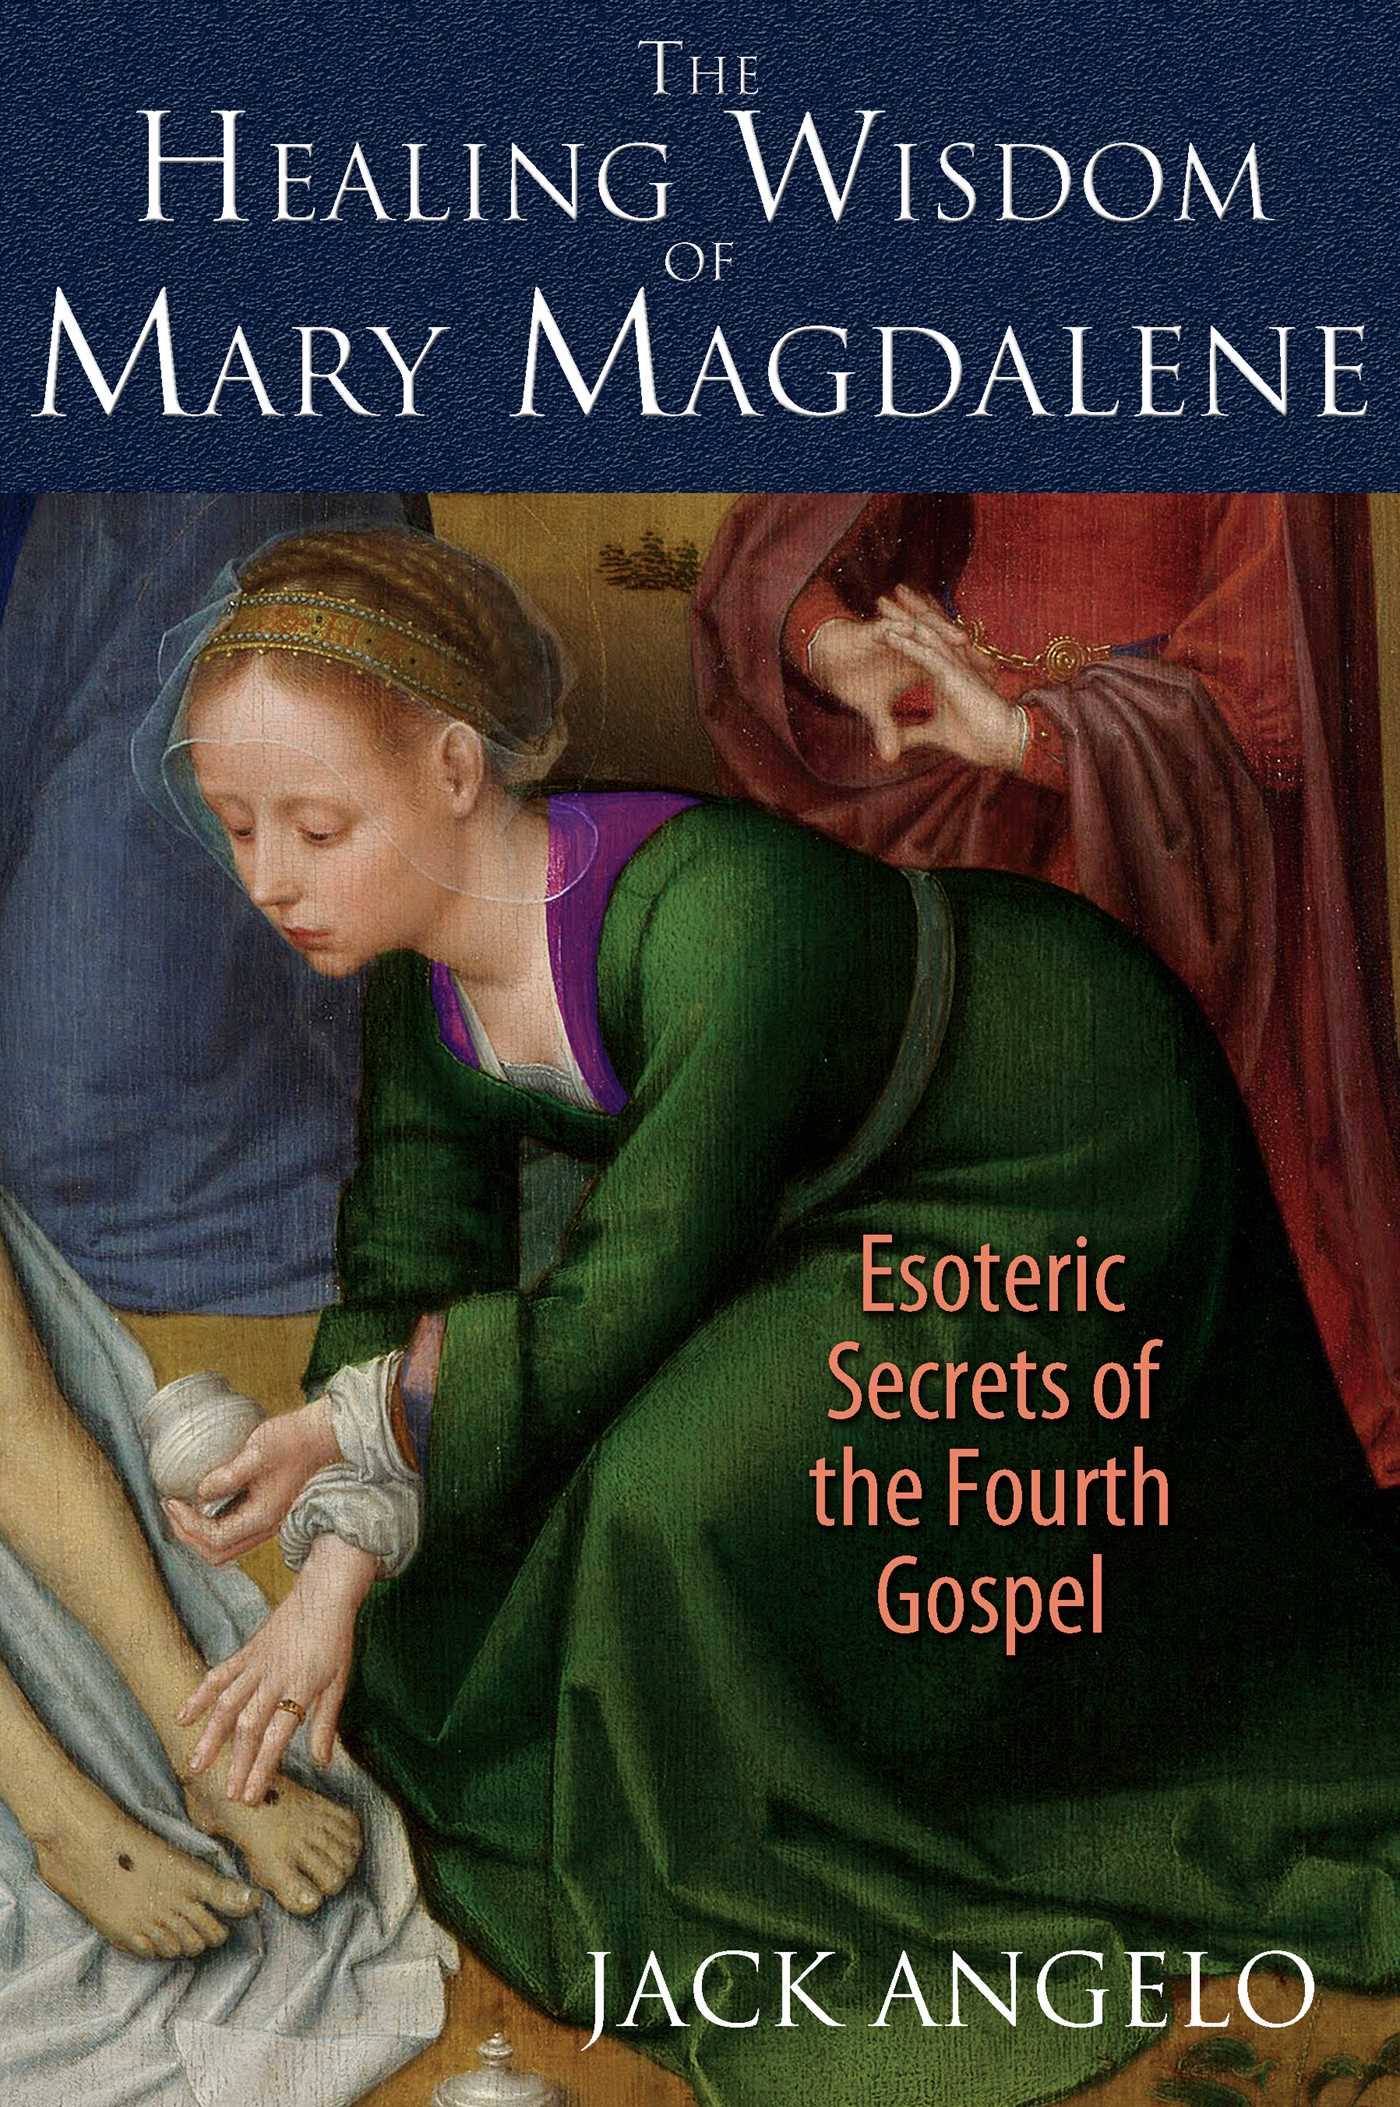 The healing wisdom of mary magdalene 9781591431992 hr